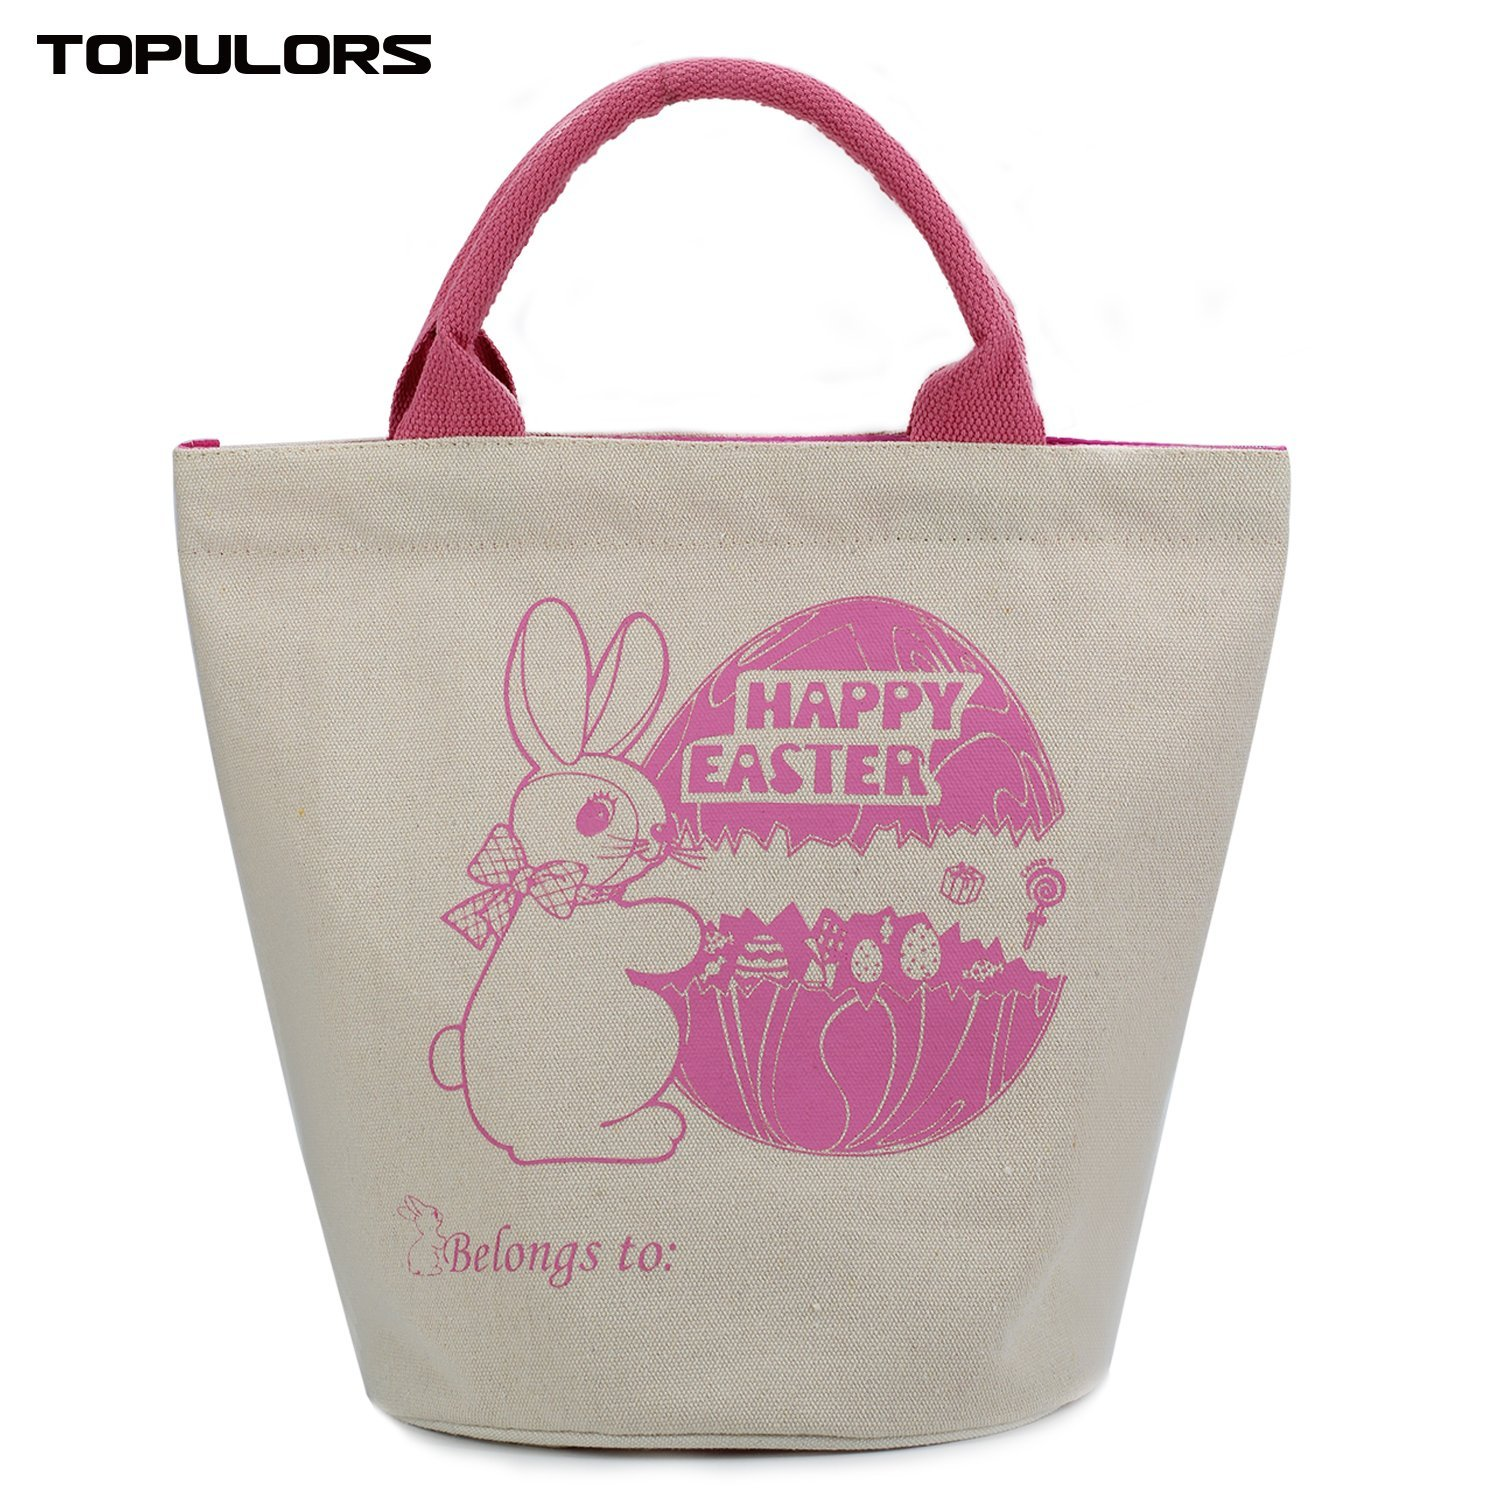 Cheap easter bag ideas find easter bag ideas deals on line at get quotations easter gift bag easter presents for kids from easter bunny basket personalized easter eggs basketsbags for negle Choice Image